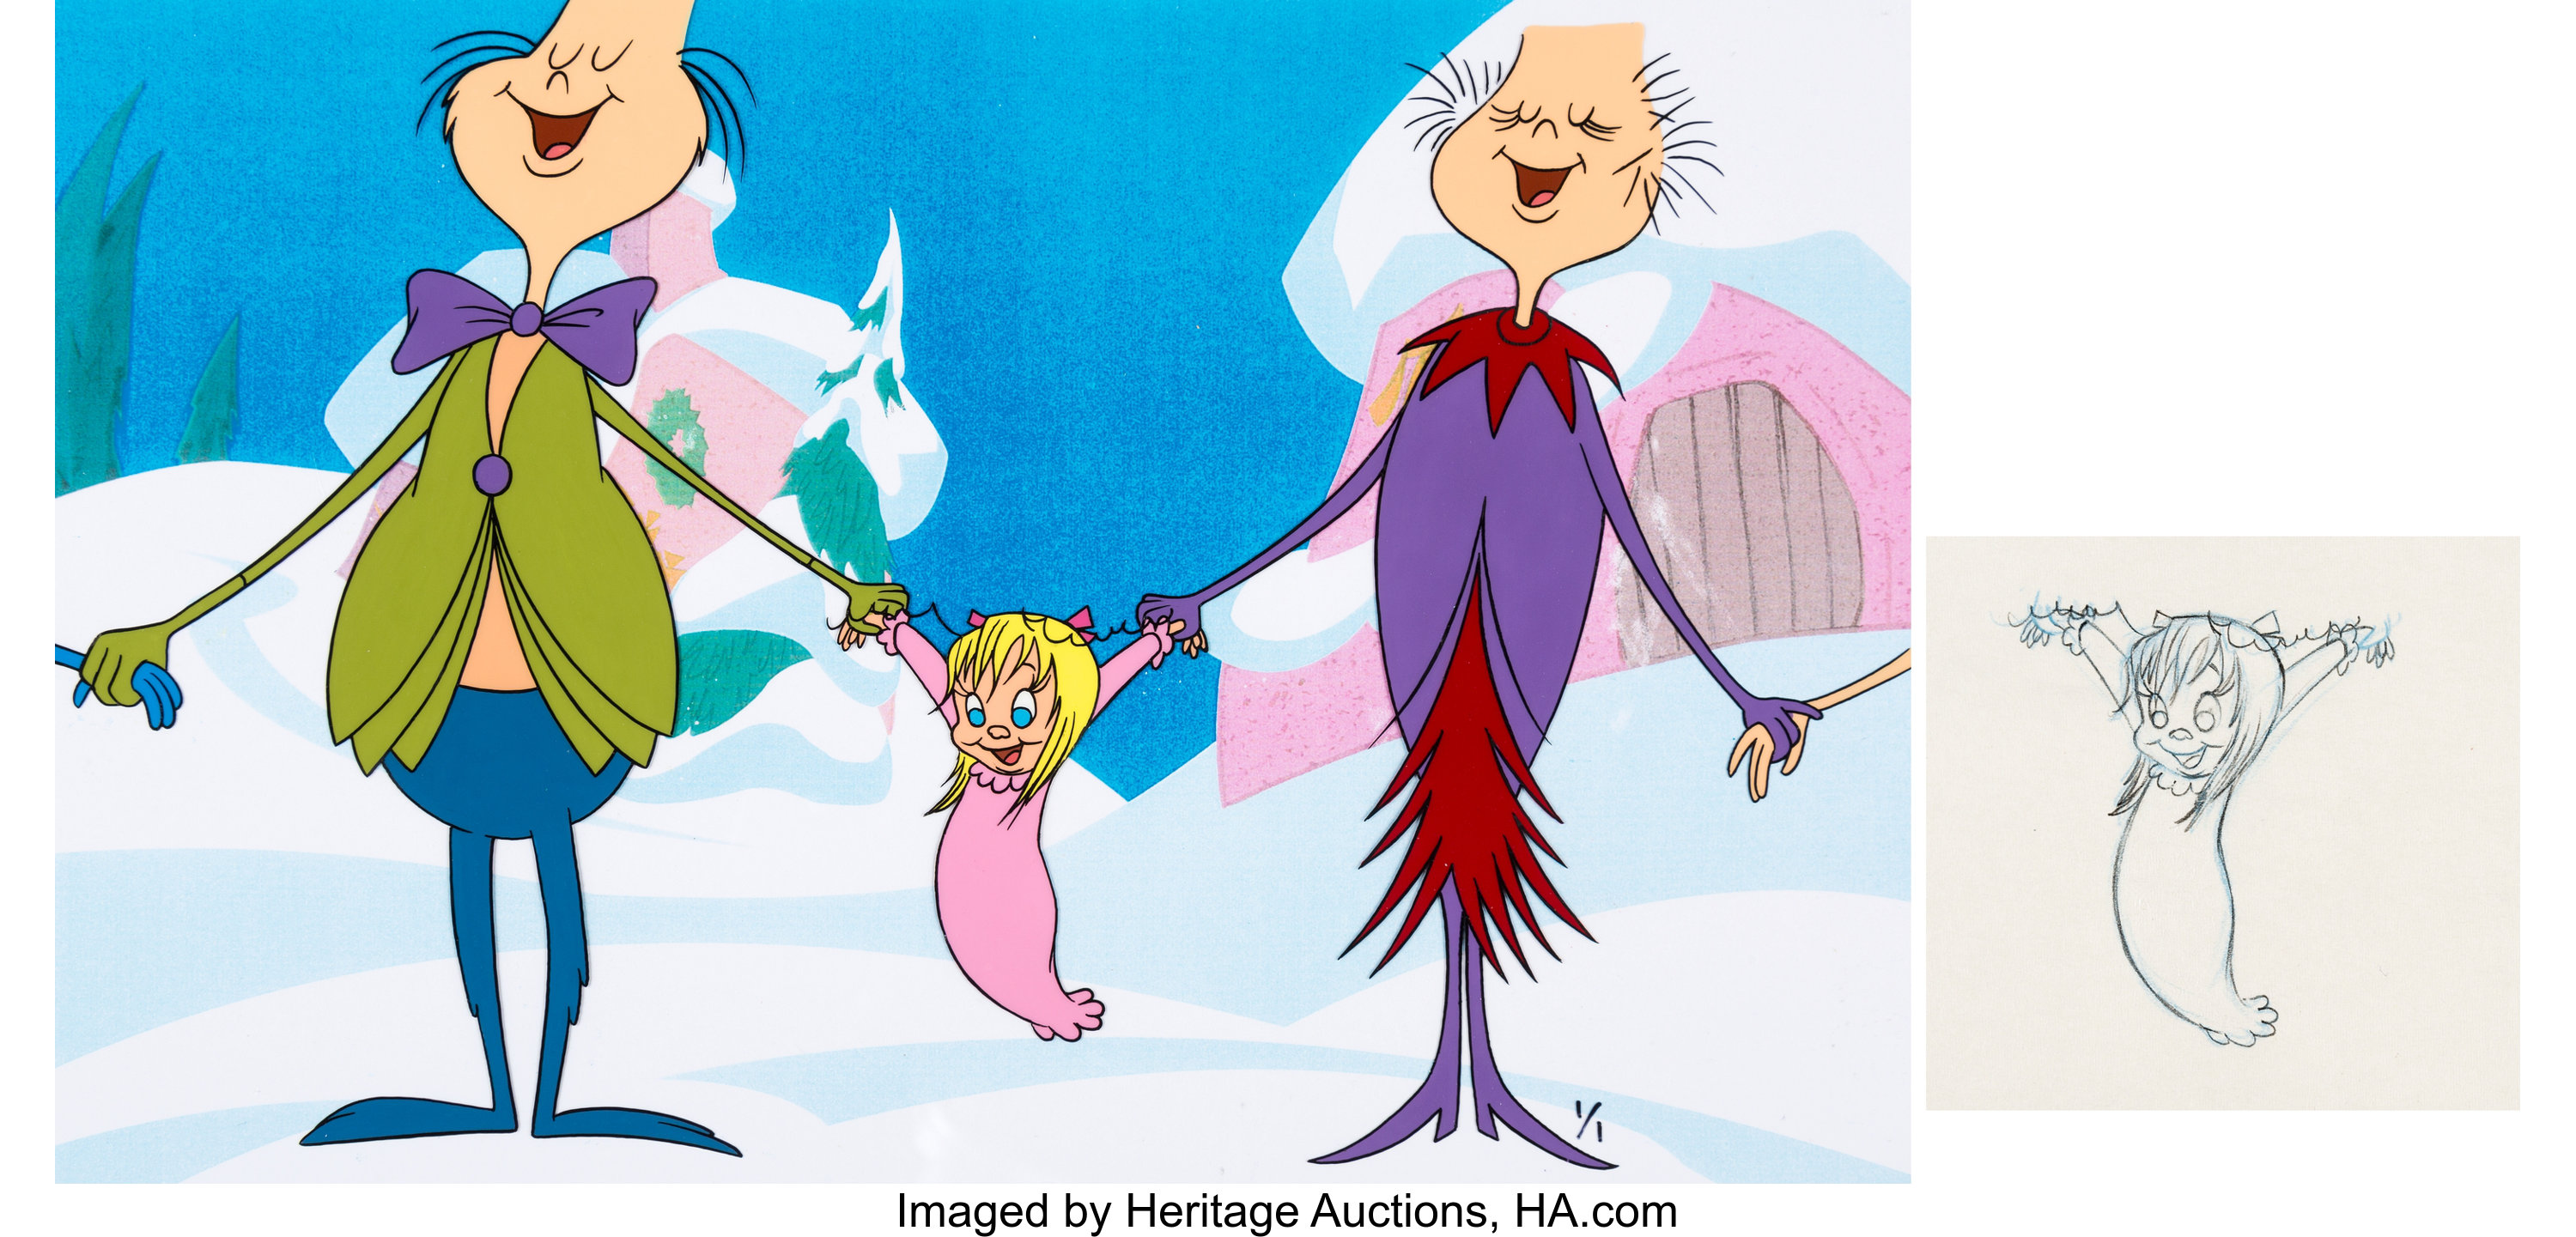 How The Grinch Stole Christmas 1966 Cindy Lou Who.Dr Seuss How The Grinch Stole Christmas Cindy Lou Who